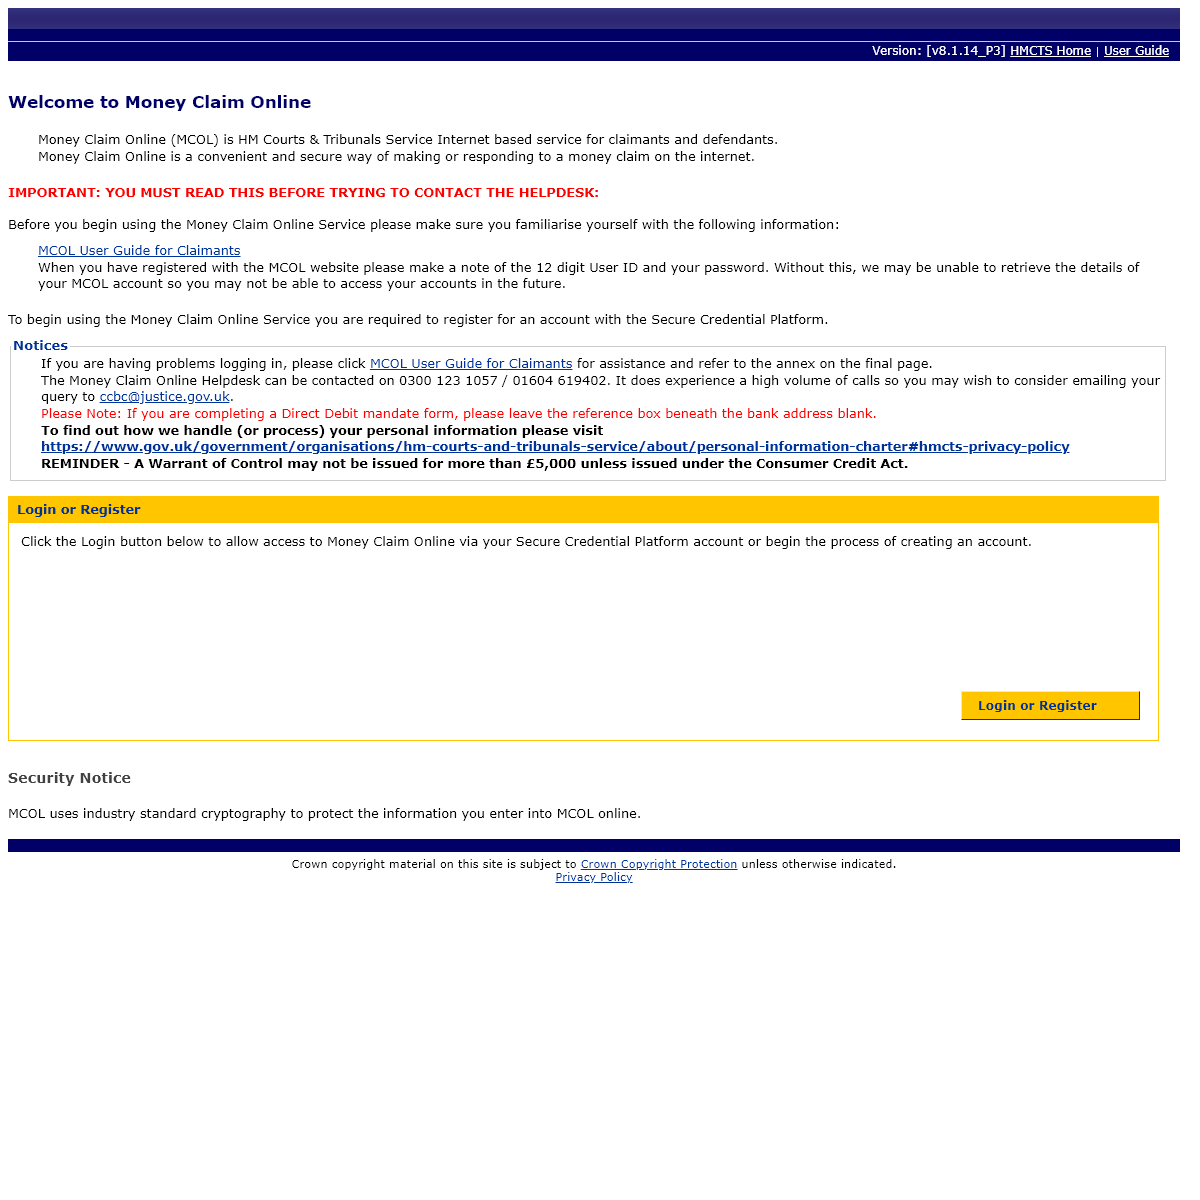 MCOL - Money Claim Online - Welcome